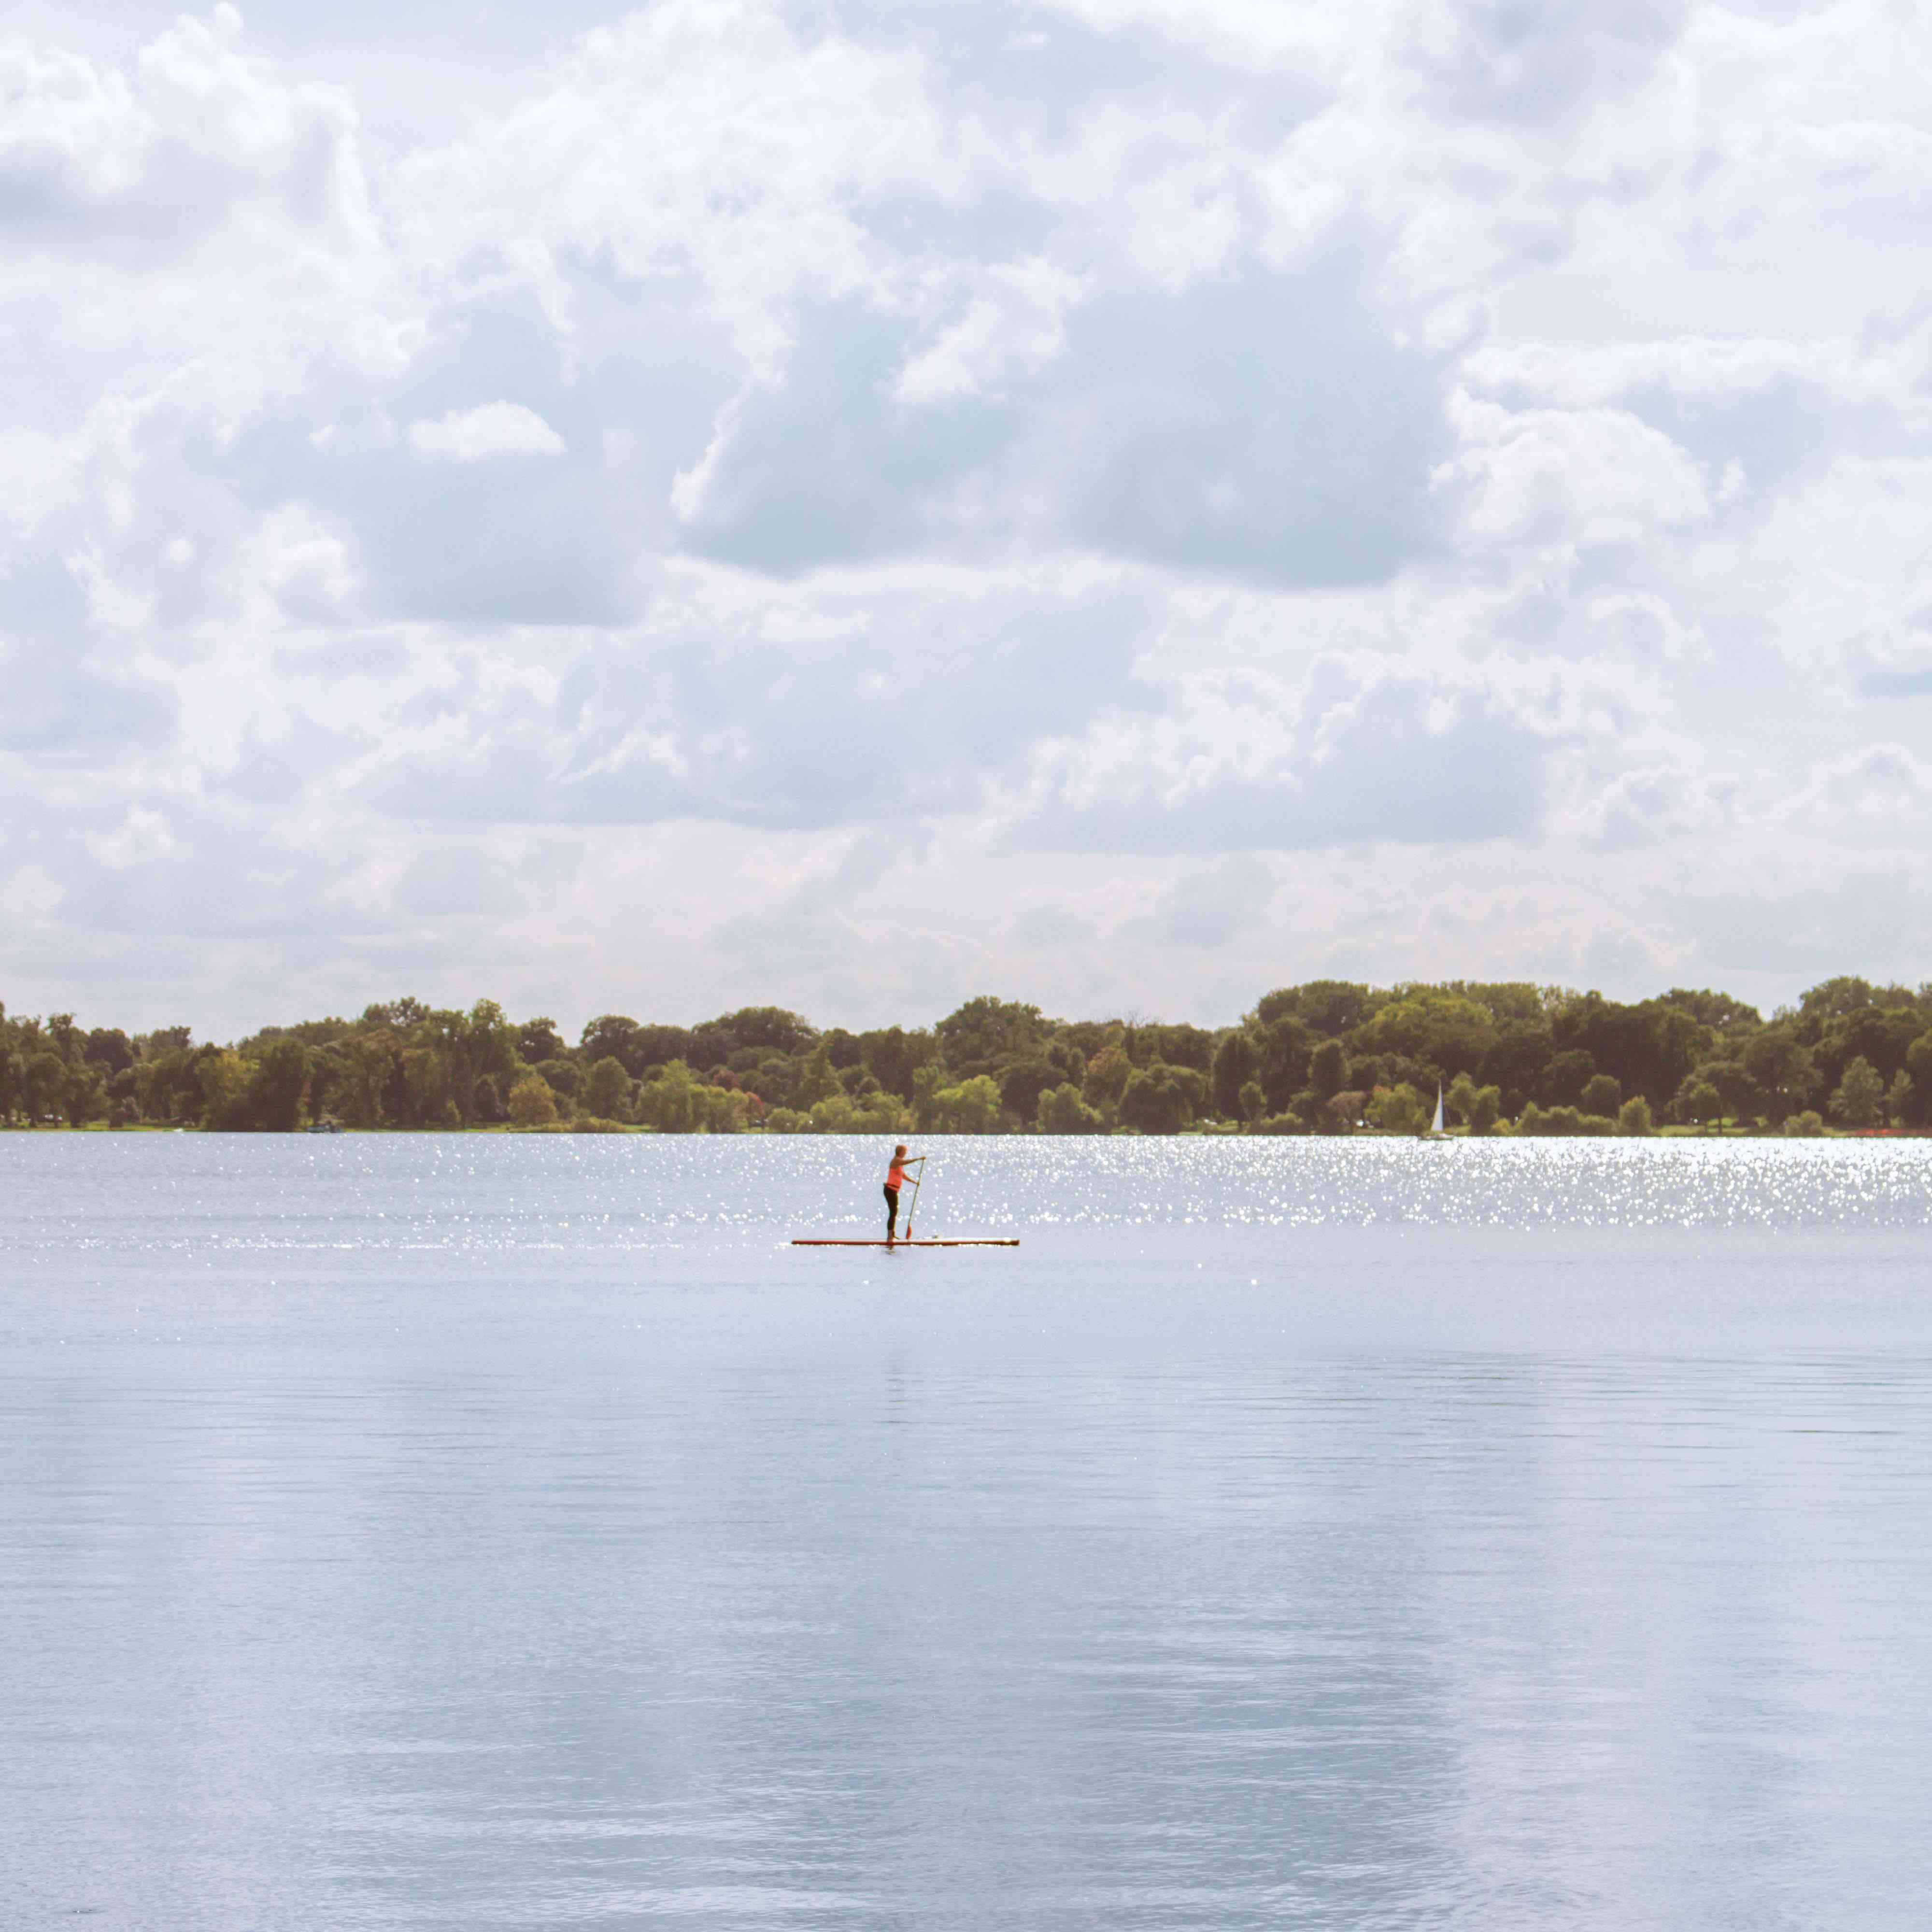 A person paddle boarding through the waters of Lake Calhoun